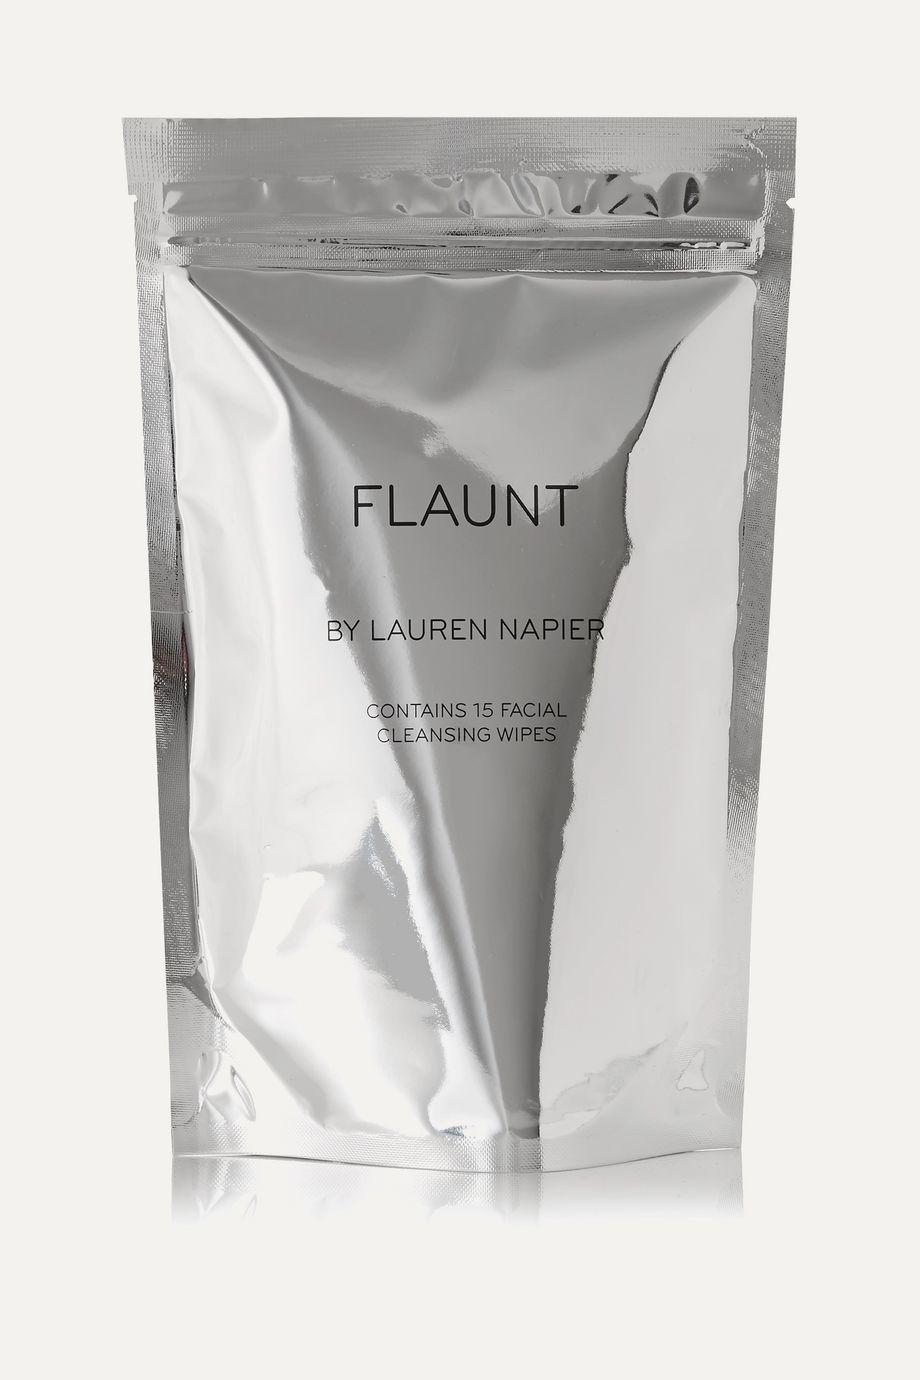 Lauren Napier Beauty The Flaunt Package - Facial Cleansing Wipes x 15